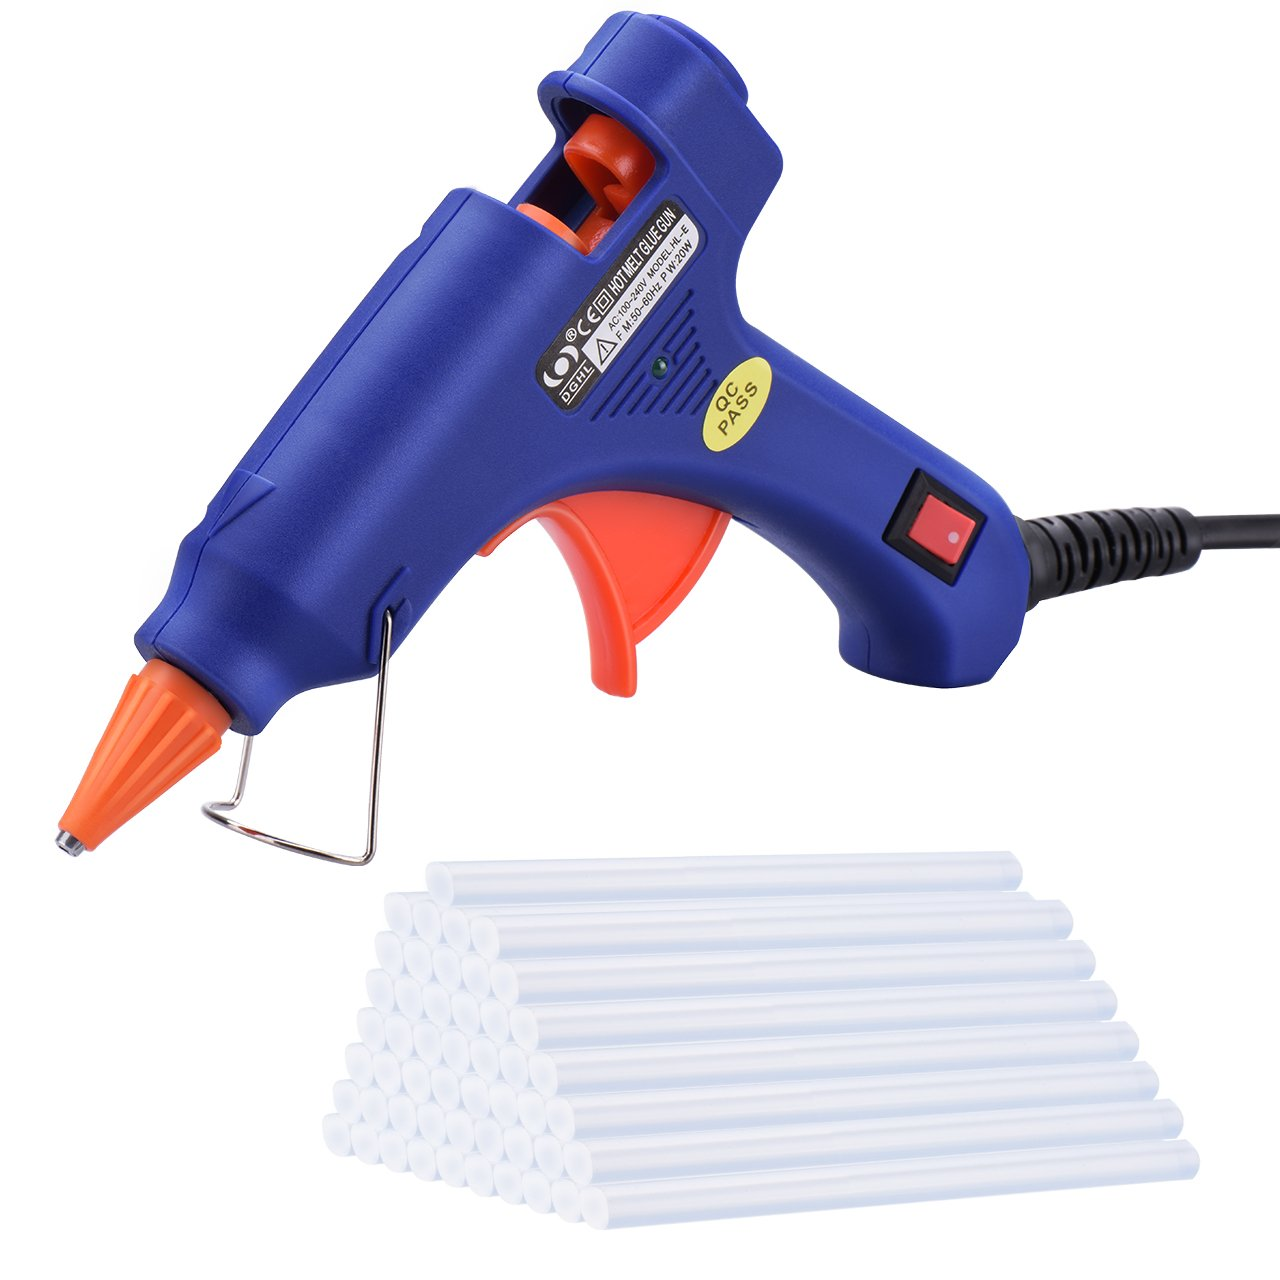 Hot Glue Gun, TopElek Mini Hot Glue Gun with 50 pcs Melt Glue Sticks